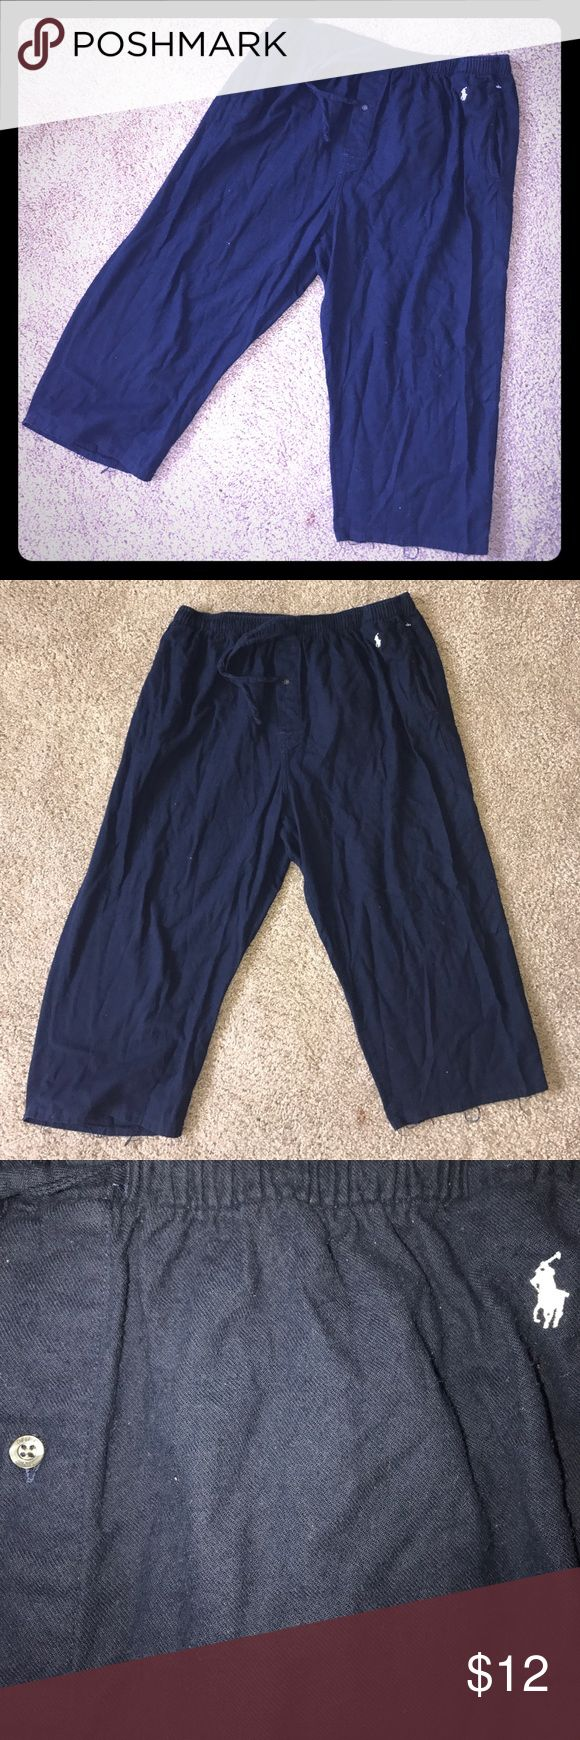 XL Polo Ralph Lauren blue flannel capris PJ bottom Men's flannel Drawstring waist, button crotch, pocketed capris like pajama bottoms. GUC minor cotton piling. Overall great condition Polo by Ralph Lauren Underwear & Socks Boxers